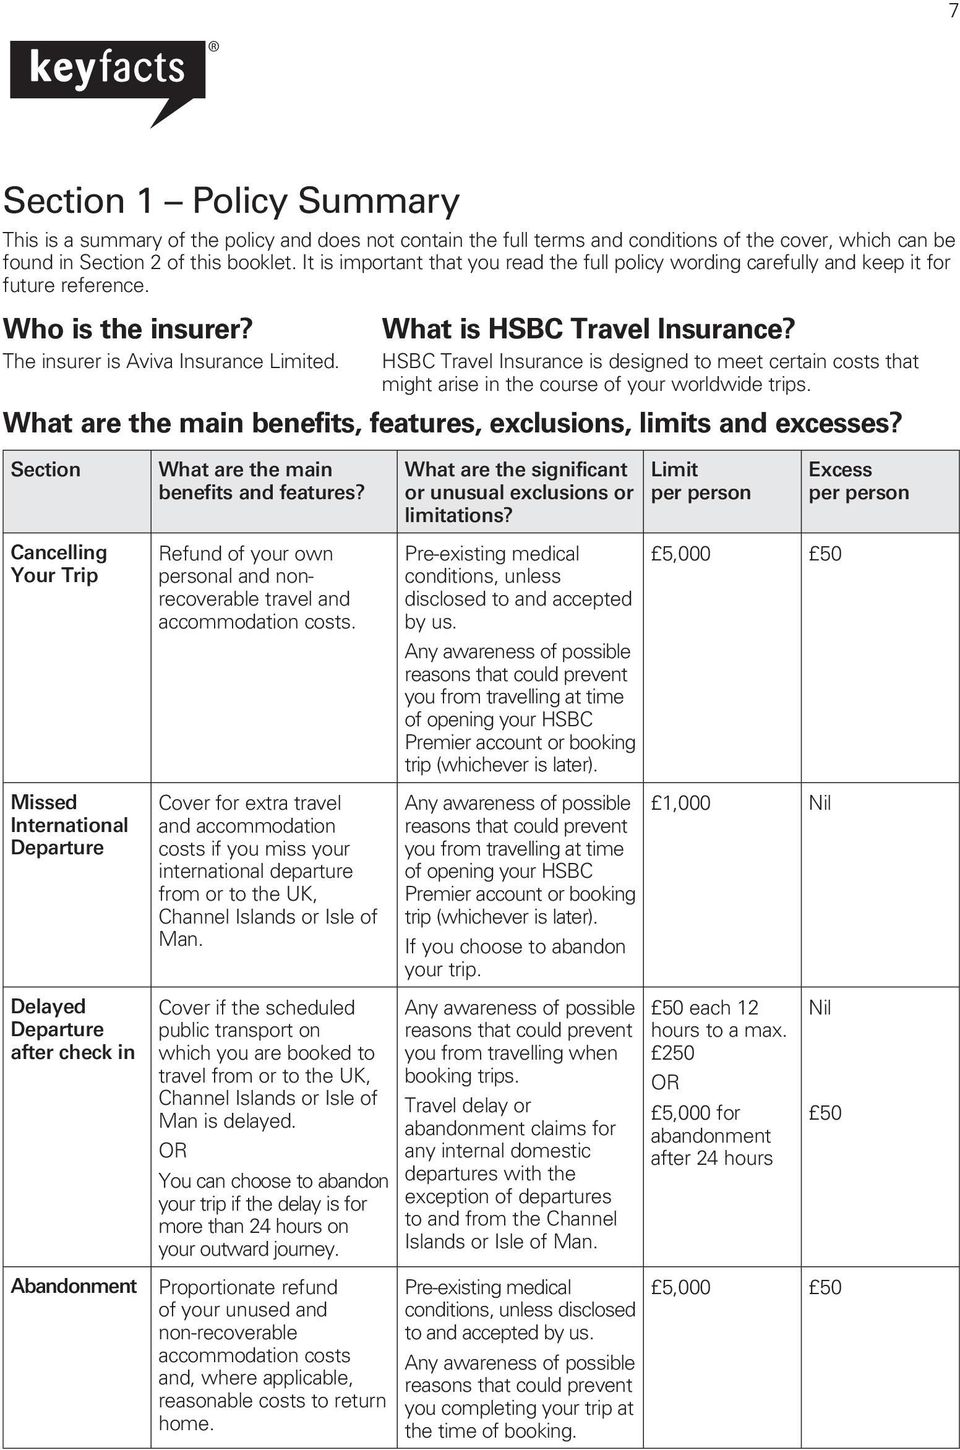 HSBC Travel Insurance is designed to meet certain costs that might arise in the course of your worldwide trips. What are the main benefits, features, exclusions, limits and excesses?